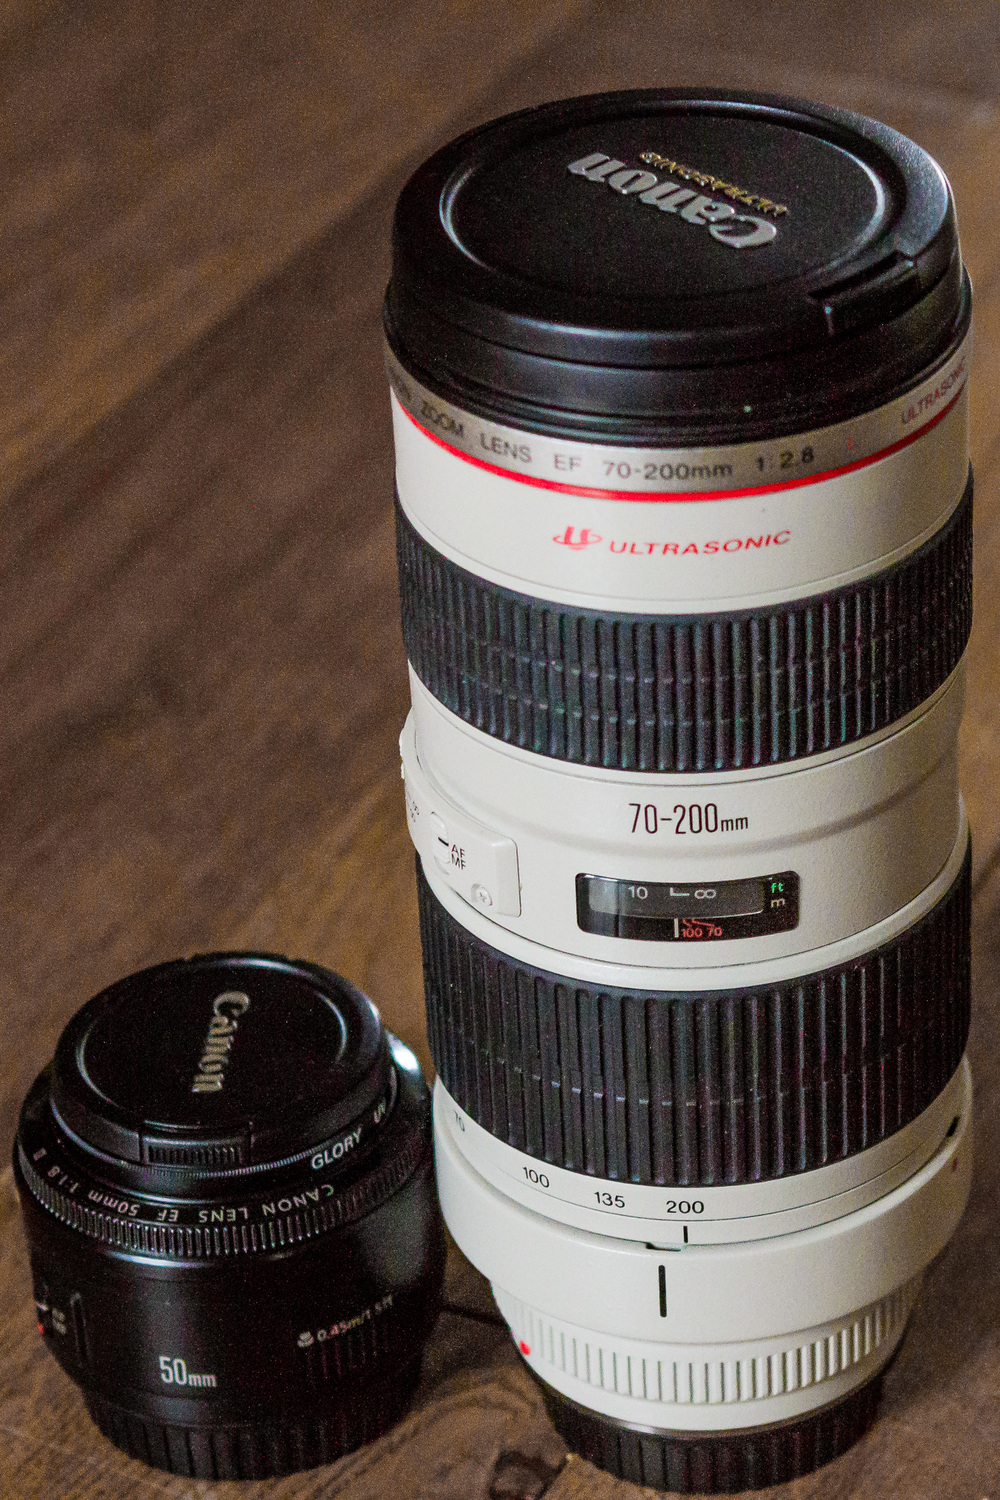 Here are two of the three lenses I carry in my kit bag - the third one being used to take this image!